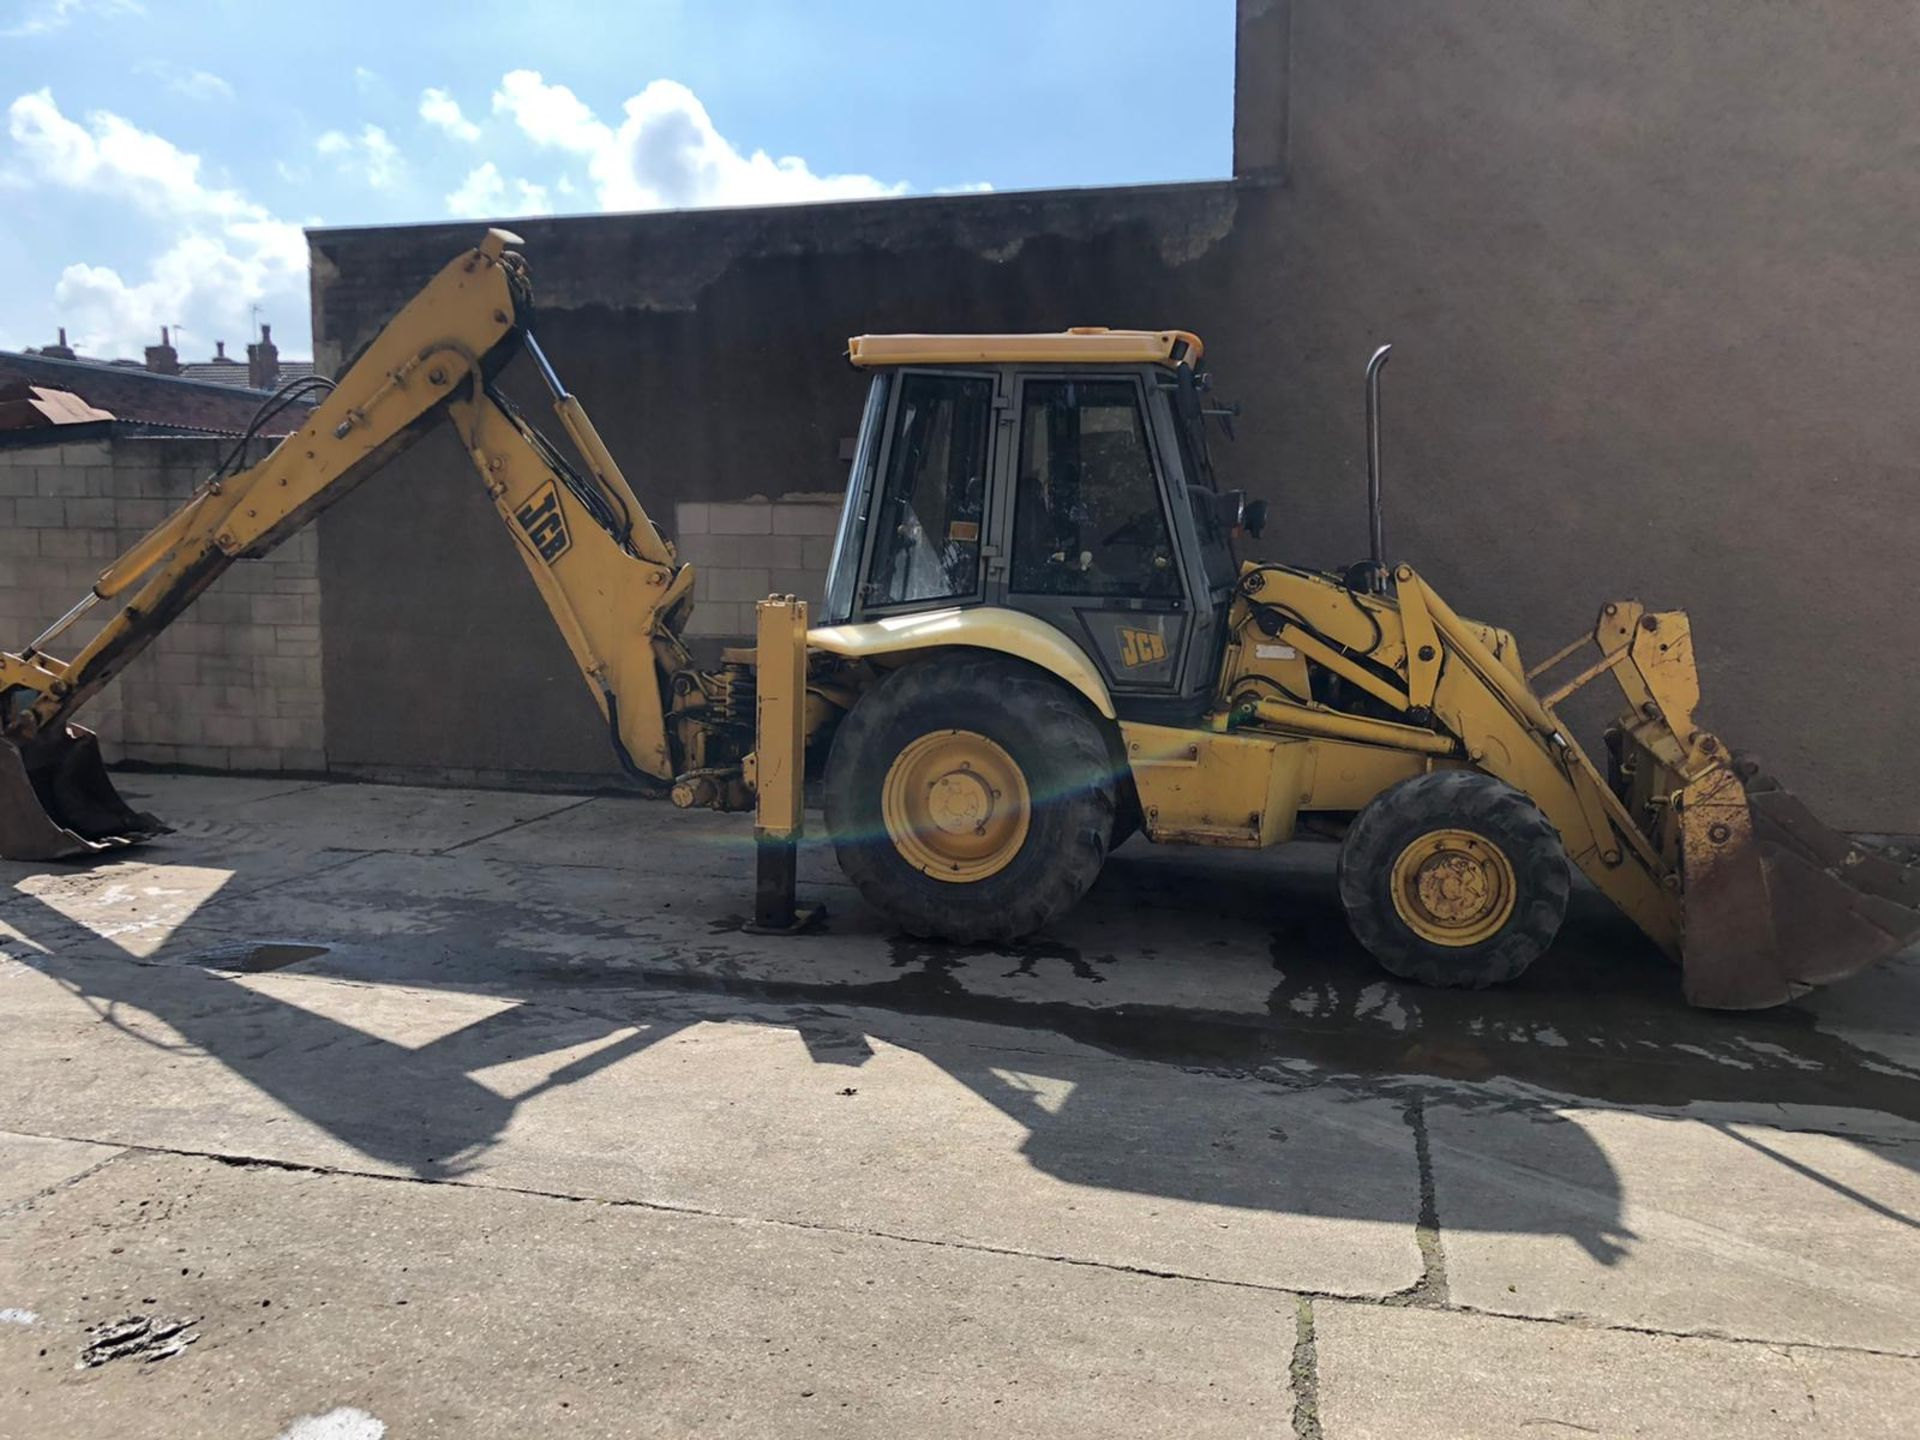 JCB 3CX PROJECT 8 DIGGER, 4X4, EXTRA DIG, C/W 3 BUCKETS, HOURS FROM NEW 7434 ONLY *NO VAT* - Image 12 of 16